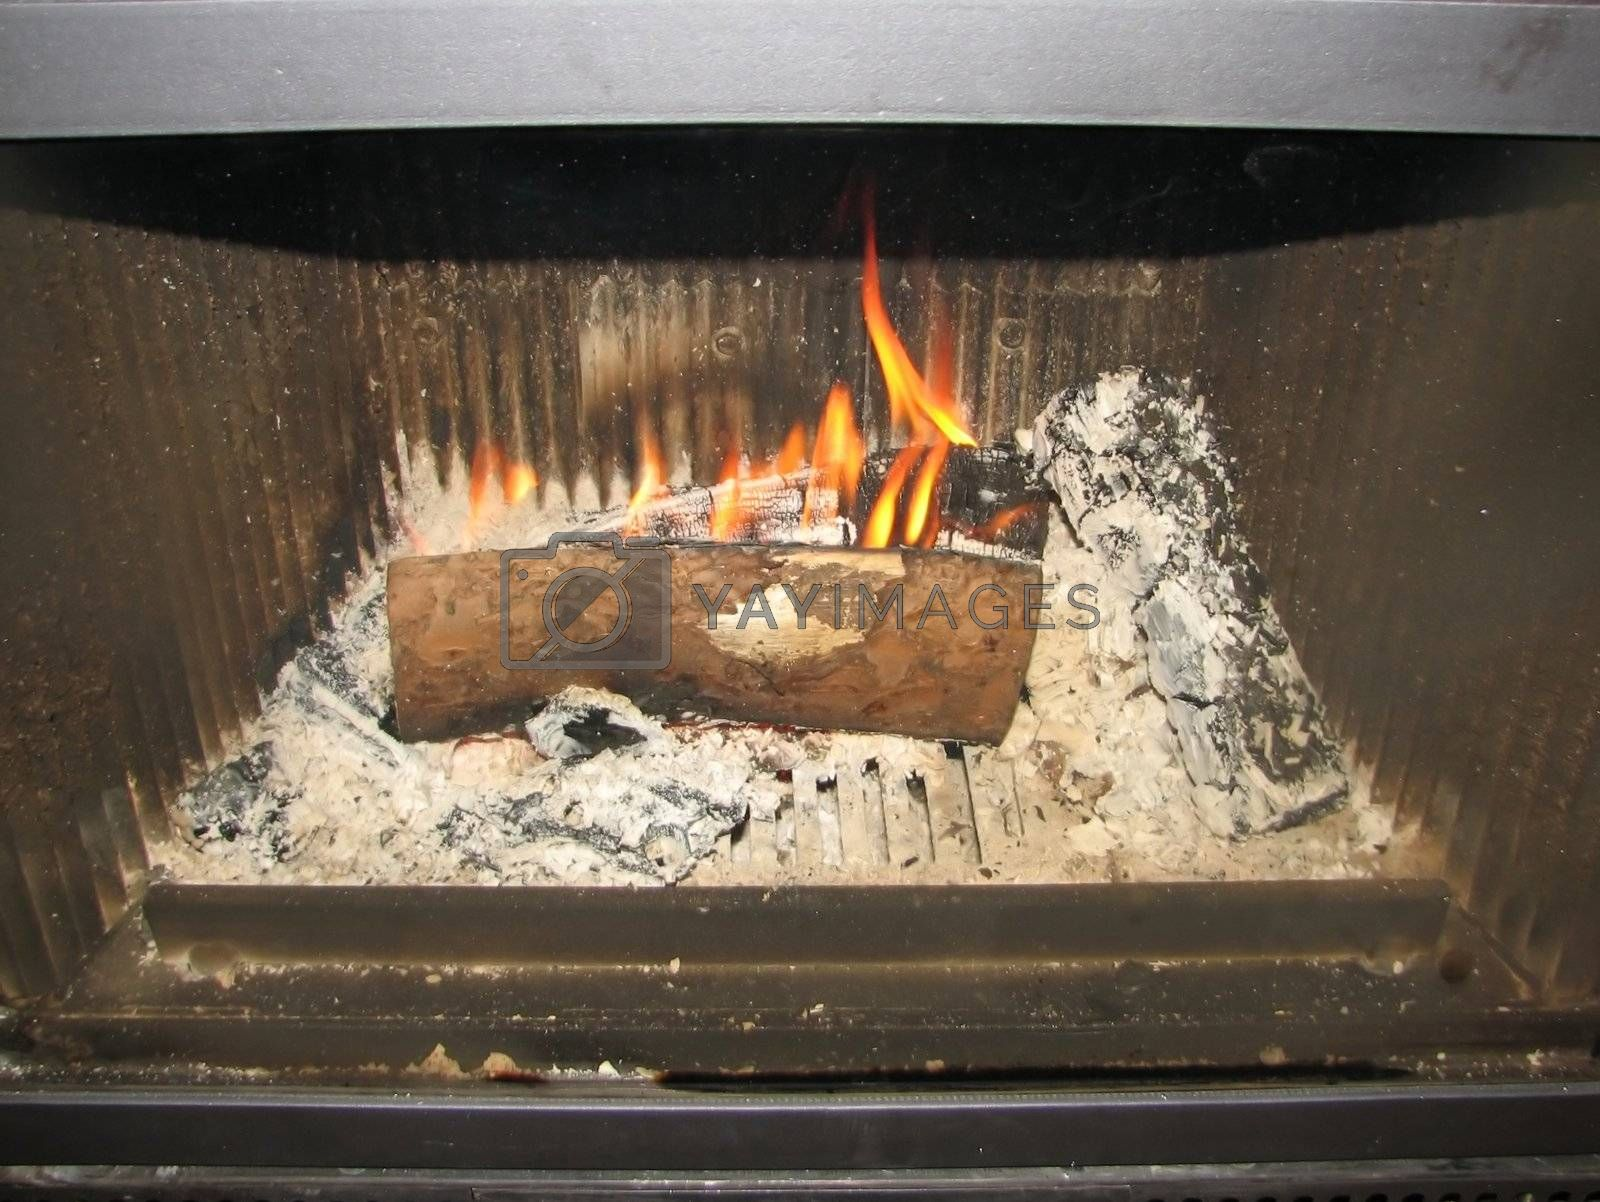 small fire starting to burn in a fireplace